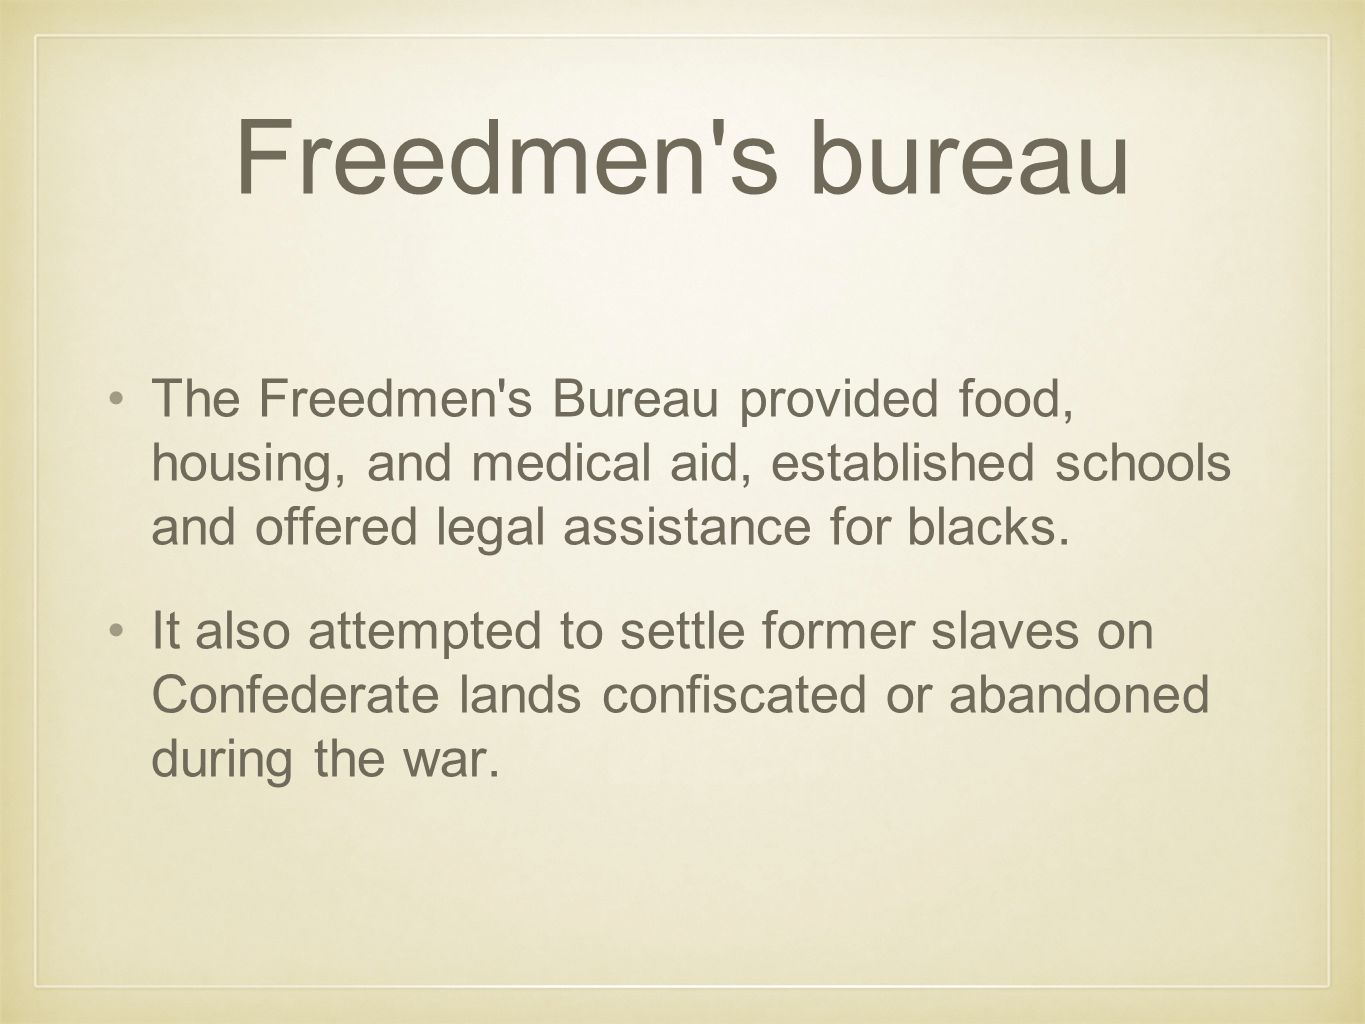 Congress introduces bills In 1866, Congress introduced a bill to extend the life of the Freedmen s Bureau and began work on a Civil Rights Bill.